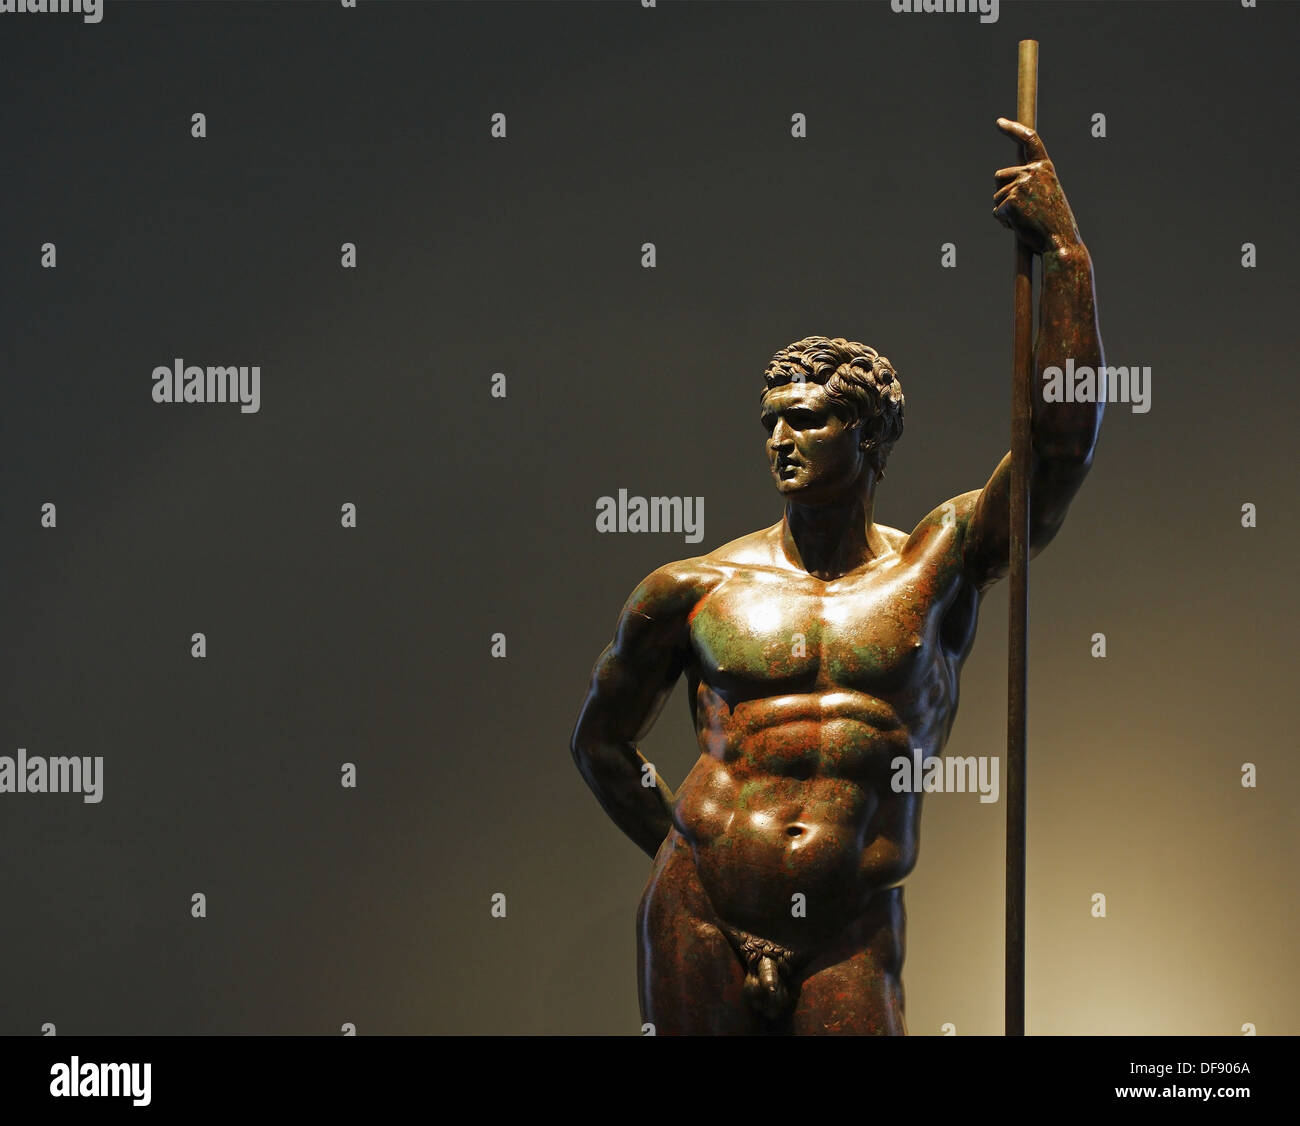 The bronze statue of a Hellenistic prince, Palazzo Massimo alle Terme, National Museum of Rome, Italy - Stock Image